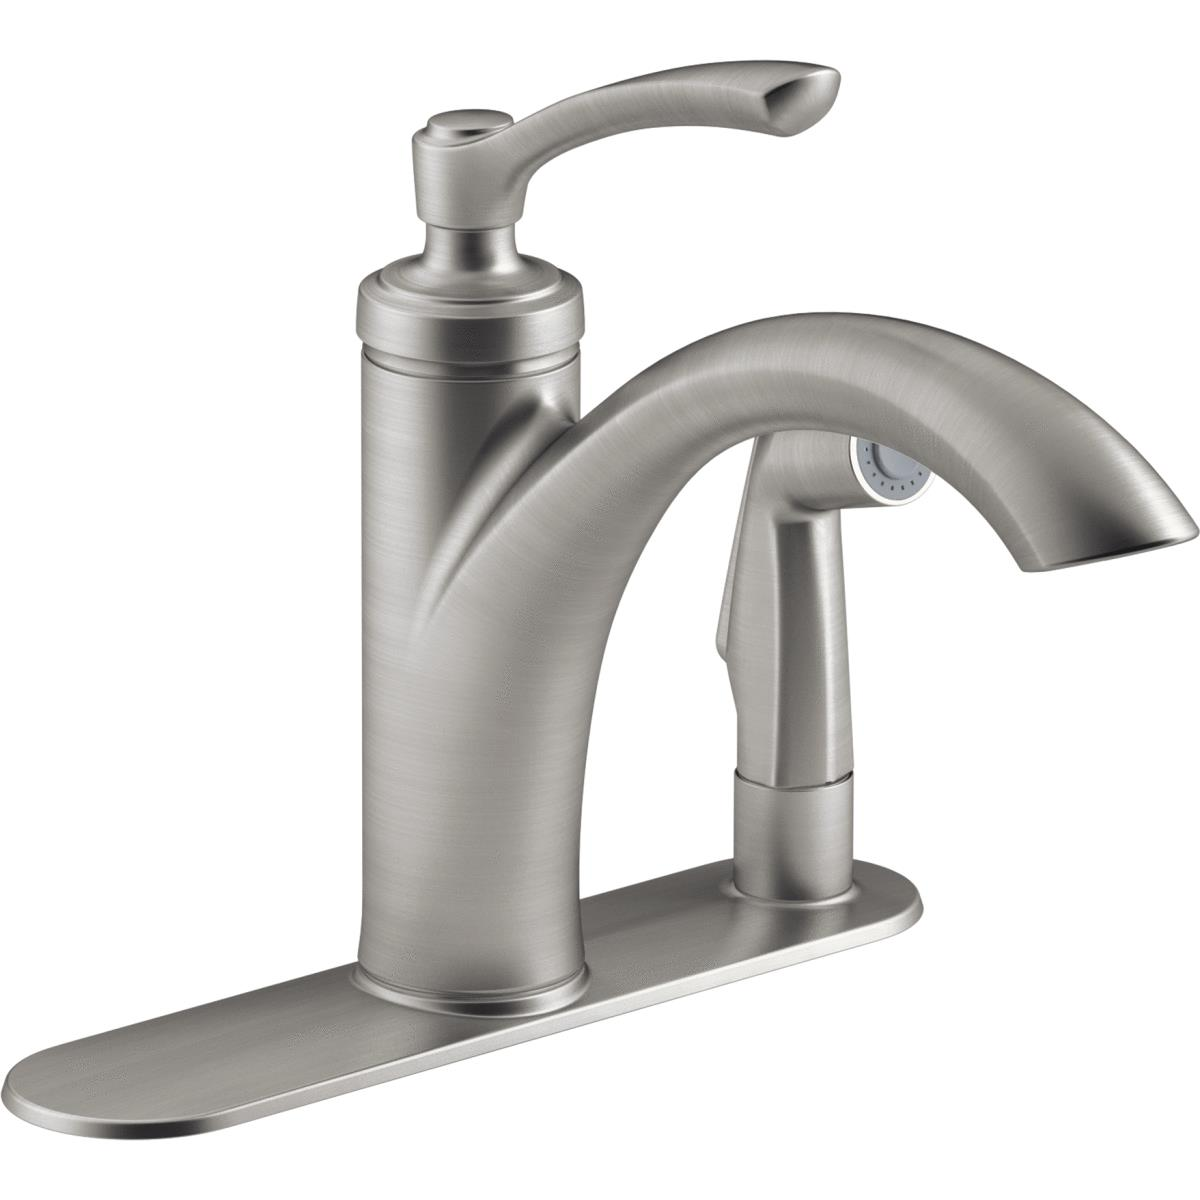 Buy Kohler Linwood Pullout Kitchen Faucet With Soap or Lotion Dispenser